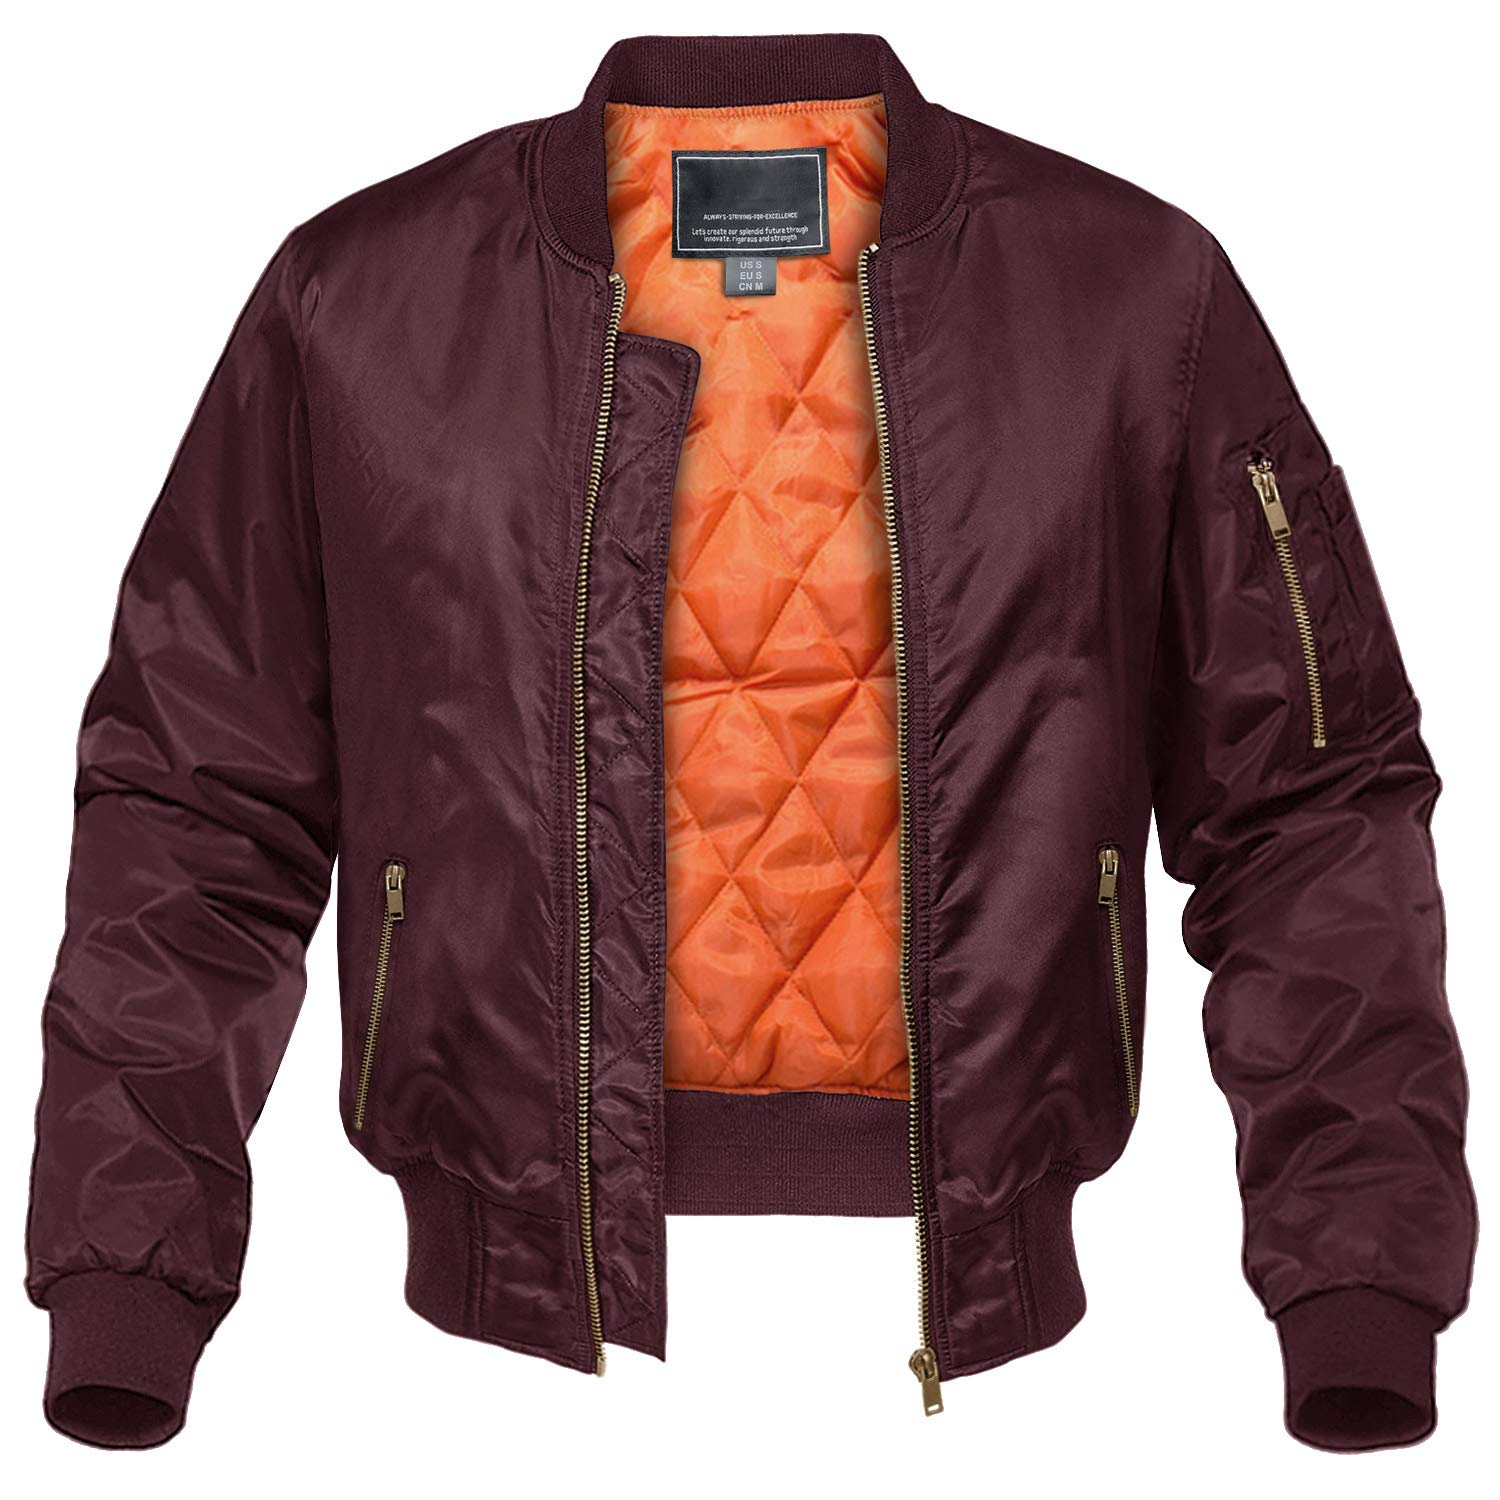 CRYSULLY Men's Bomber Jackets Fall Winter Outerwear Baseball Varsity Flight Jacket Wine Red by CRYSULLY